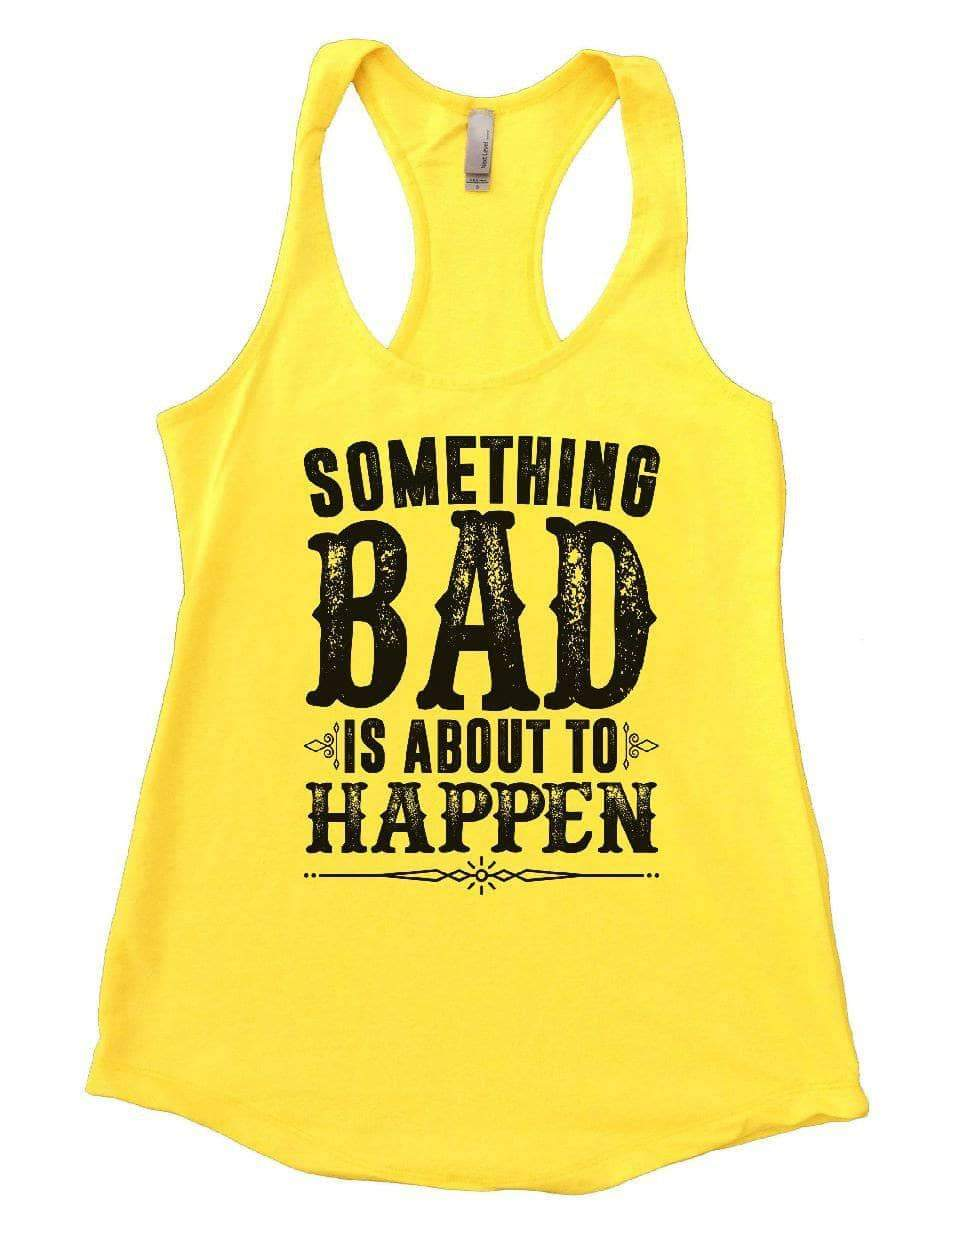 SOMETHING BAD IS ABOUT TO HAPPEN Womens Workout Tank Top Small Womens Tank Tops Yellow